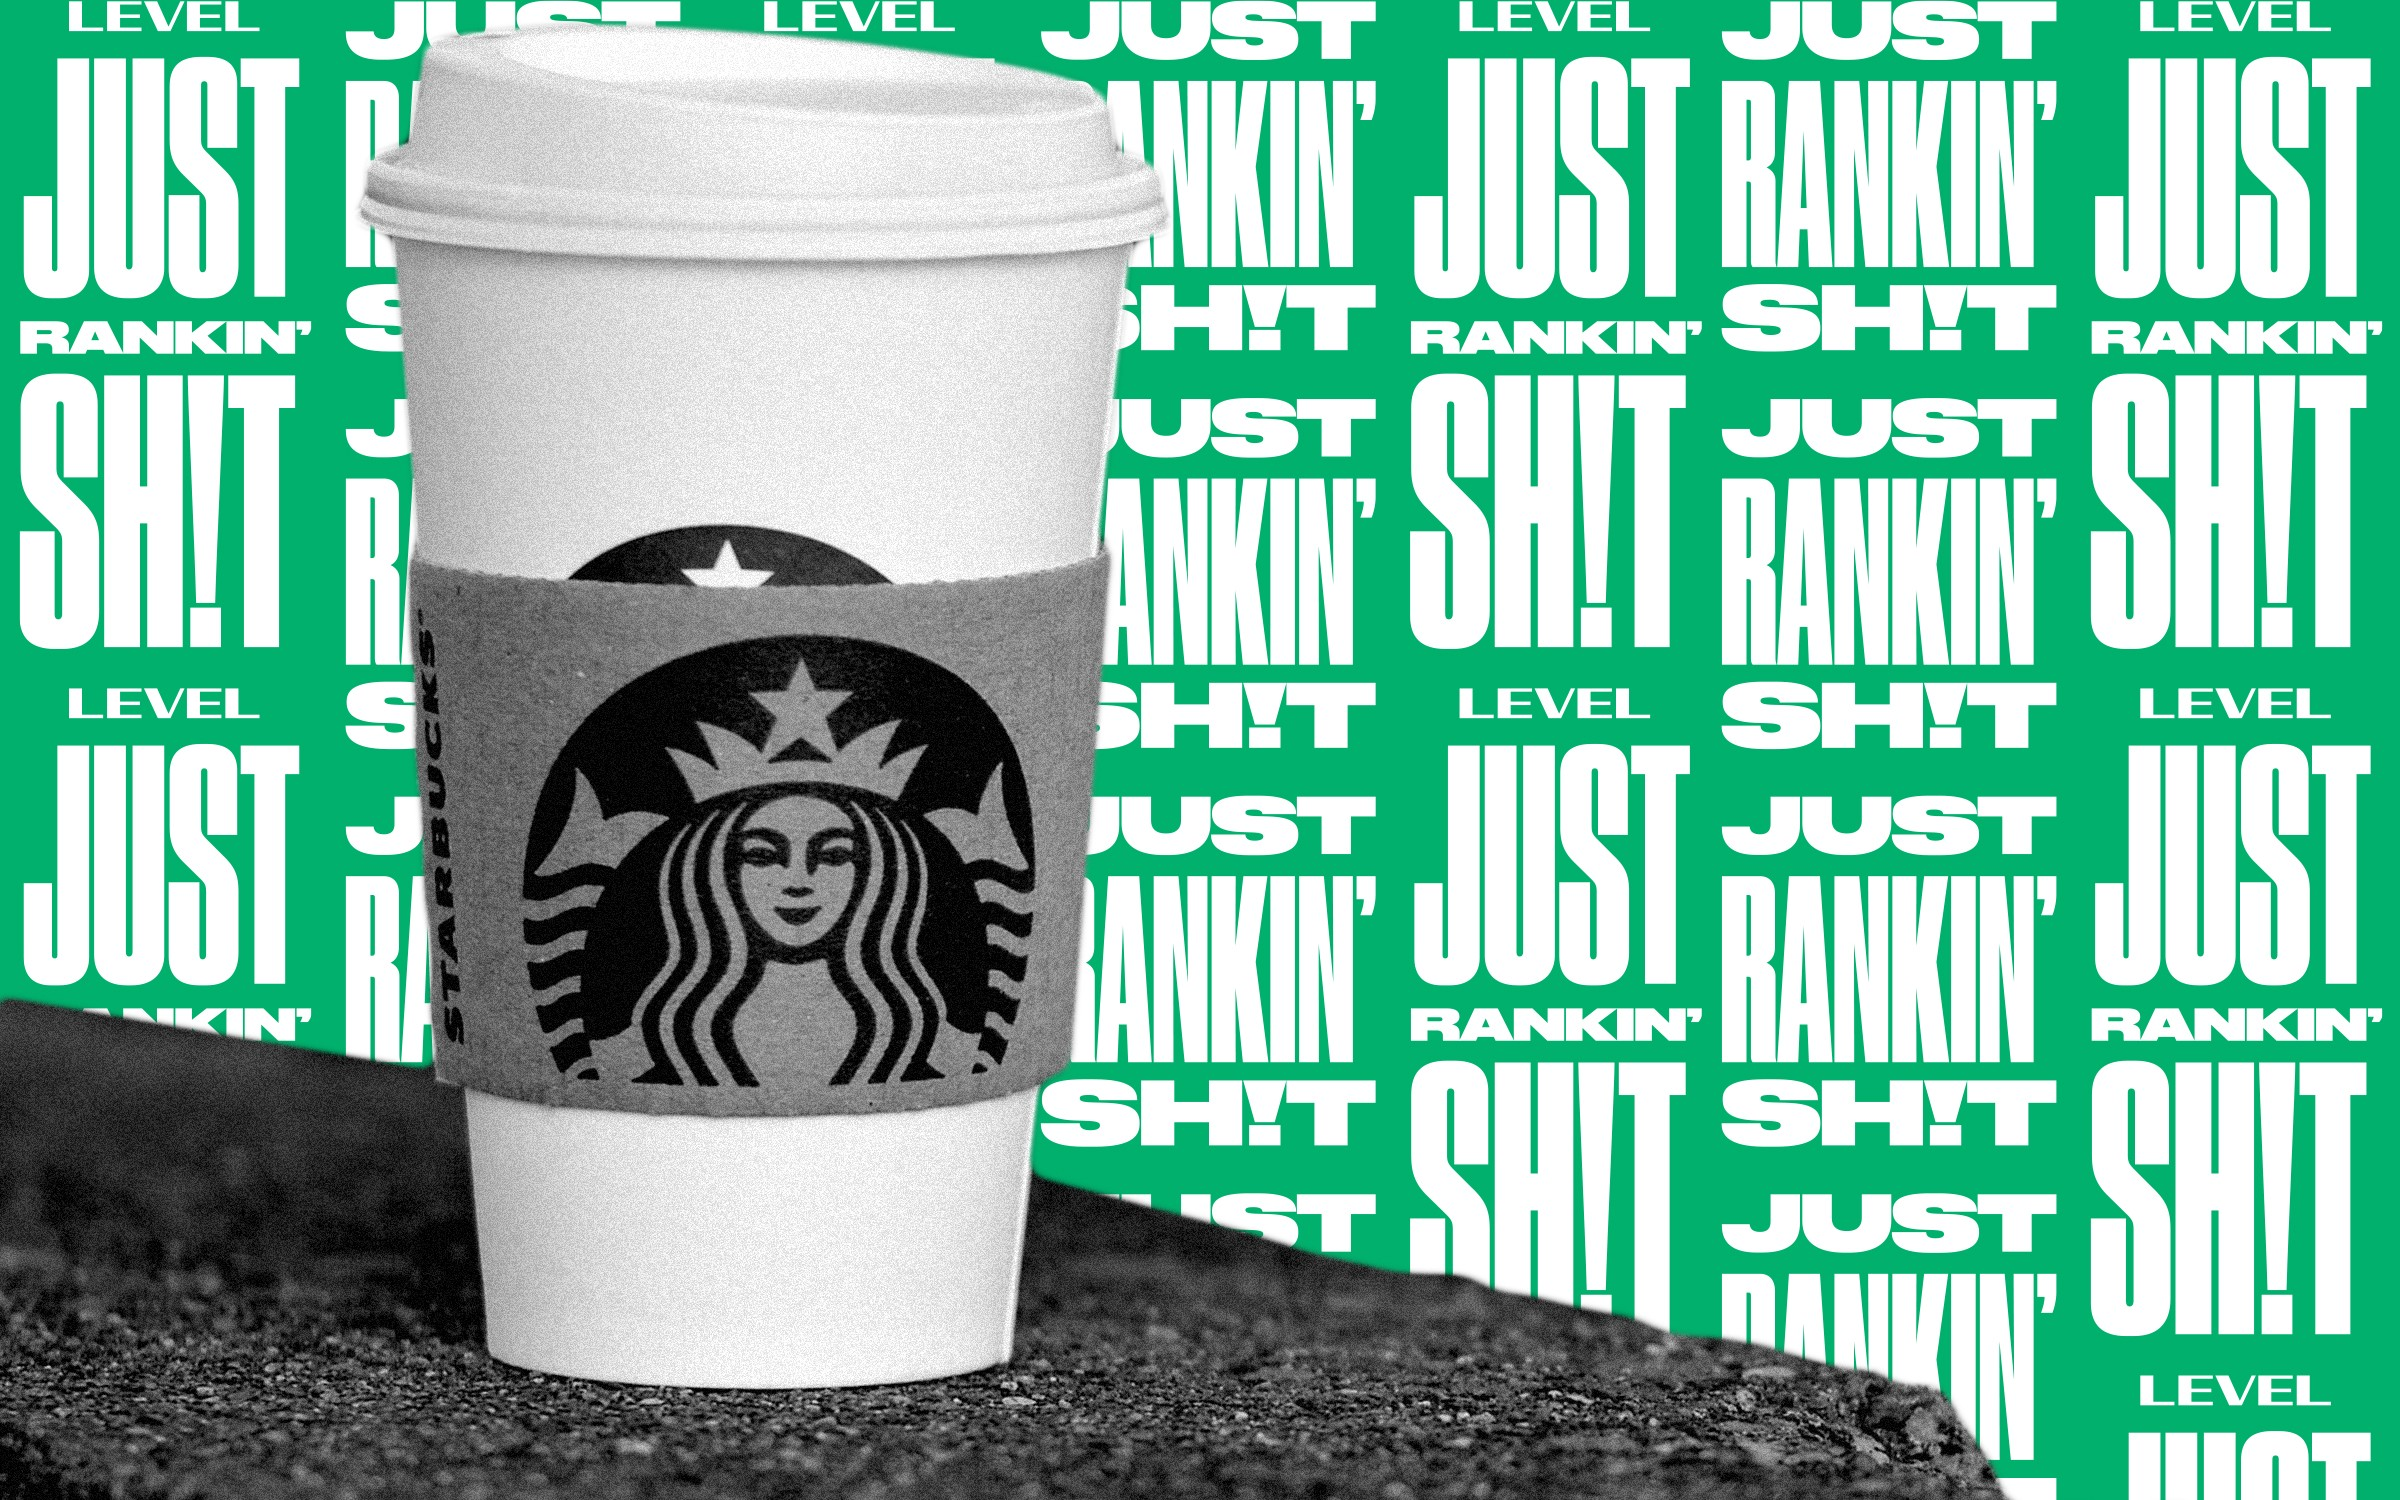 A to-go cup of Starbucks